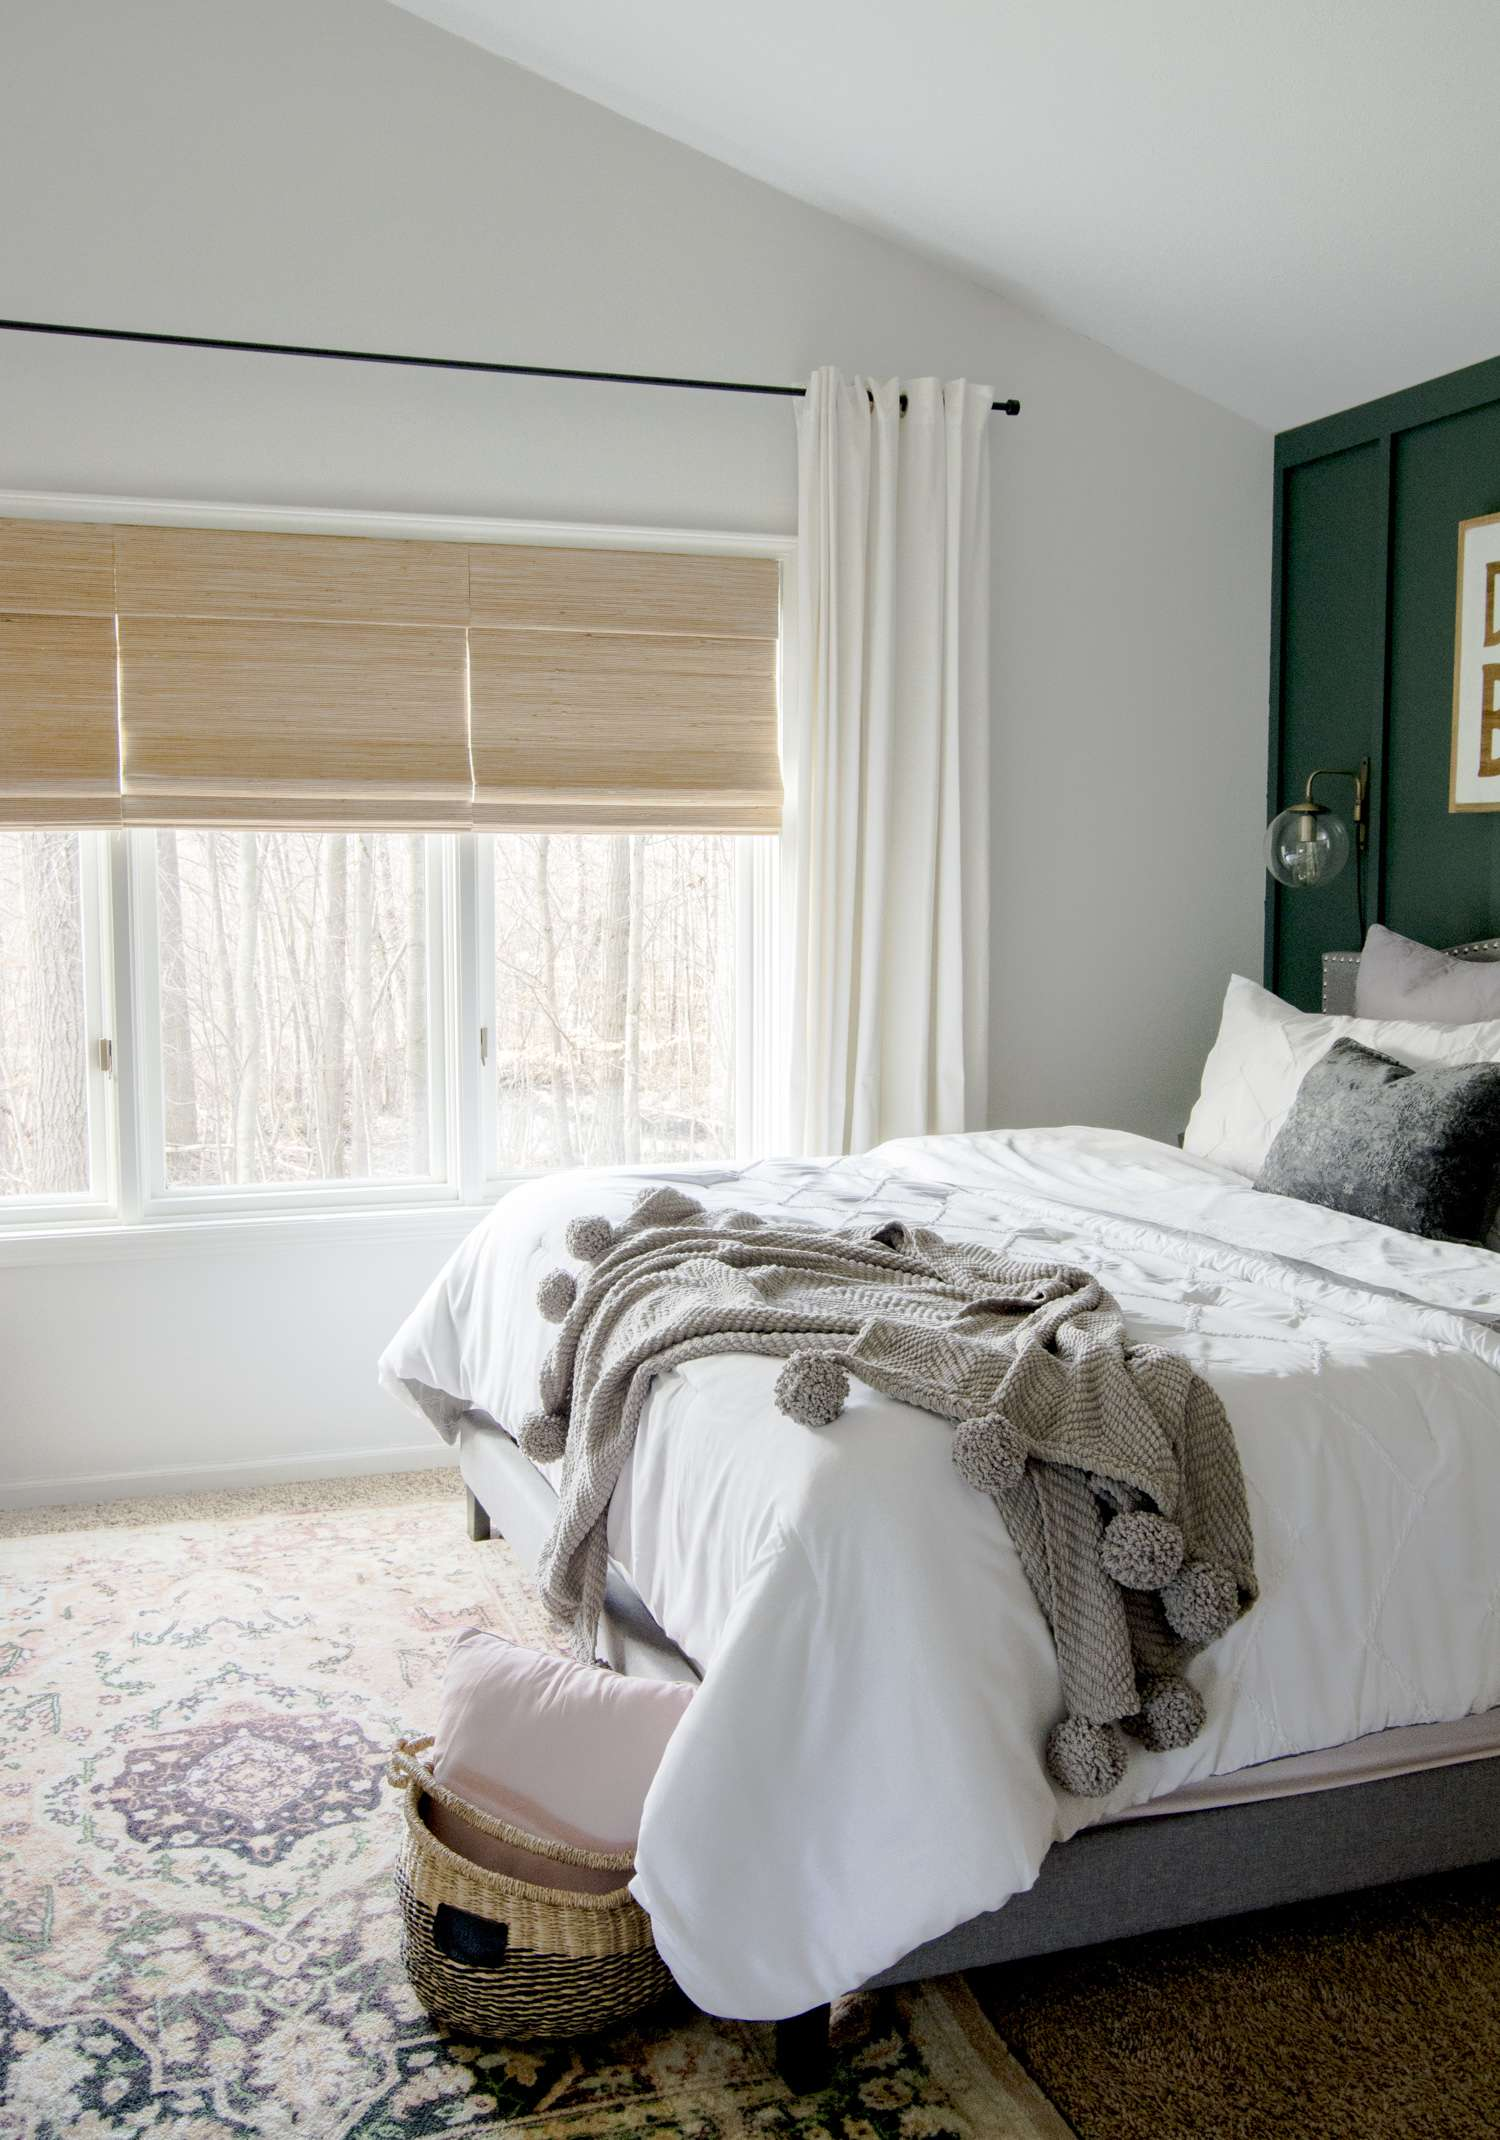 Block out light with roman shades for restful sleep.